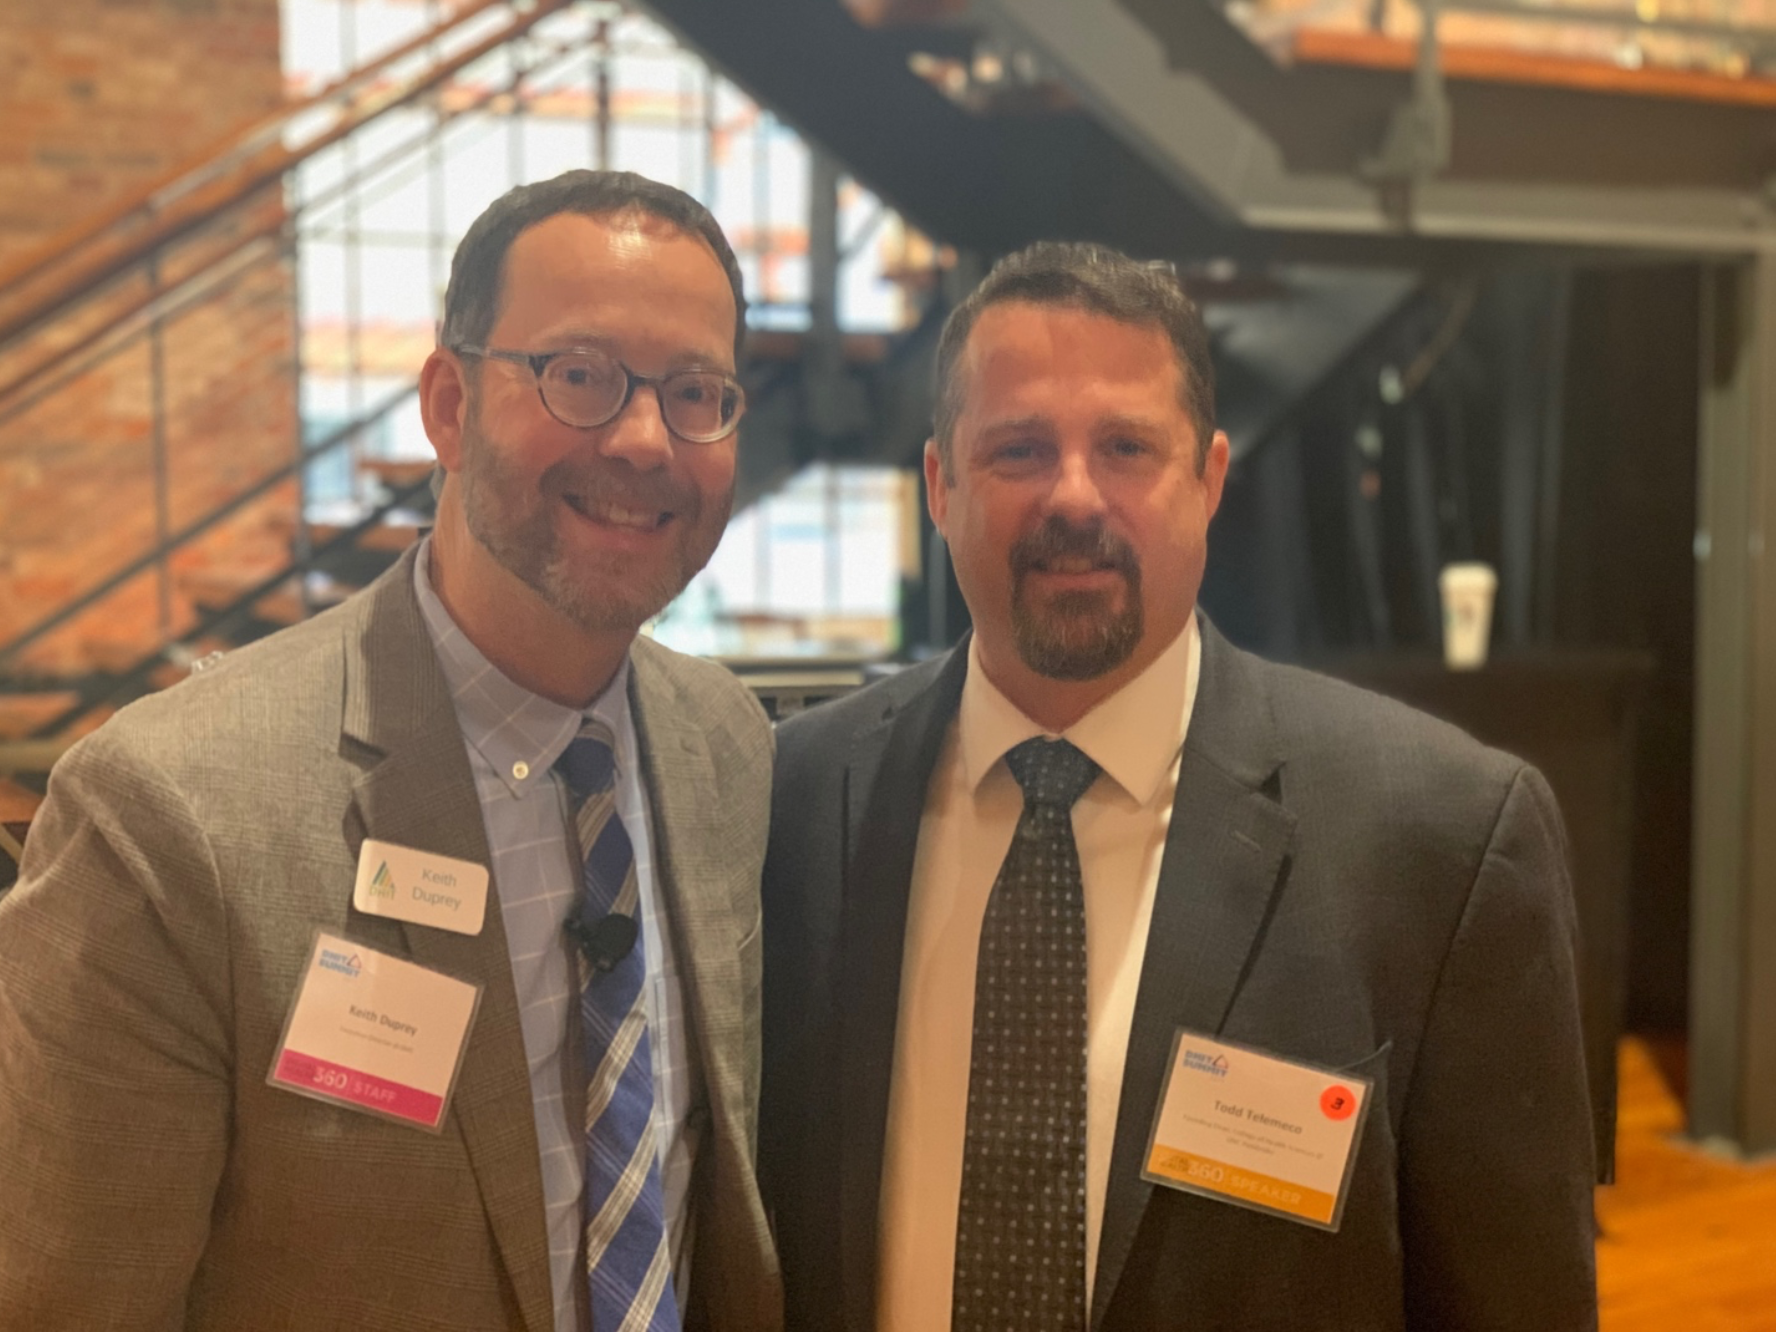 Keith Duprey, Executive Director at DHIT, with Todd Telemeco, Founding Dean of the College of Health Sciences at UNC Pembroke.